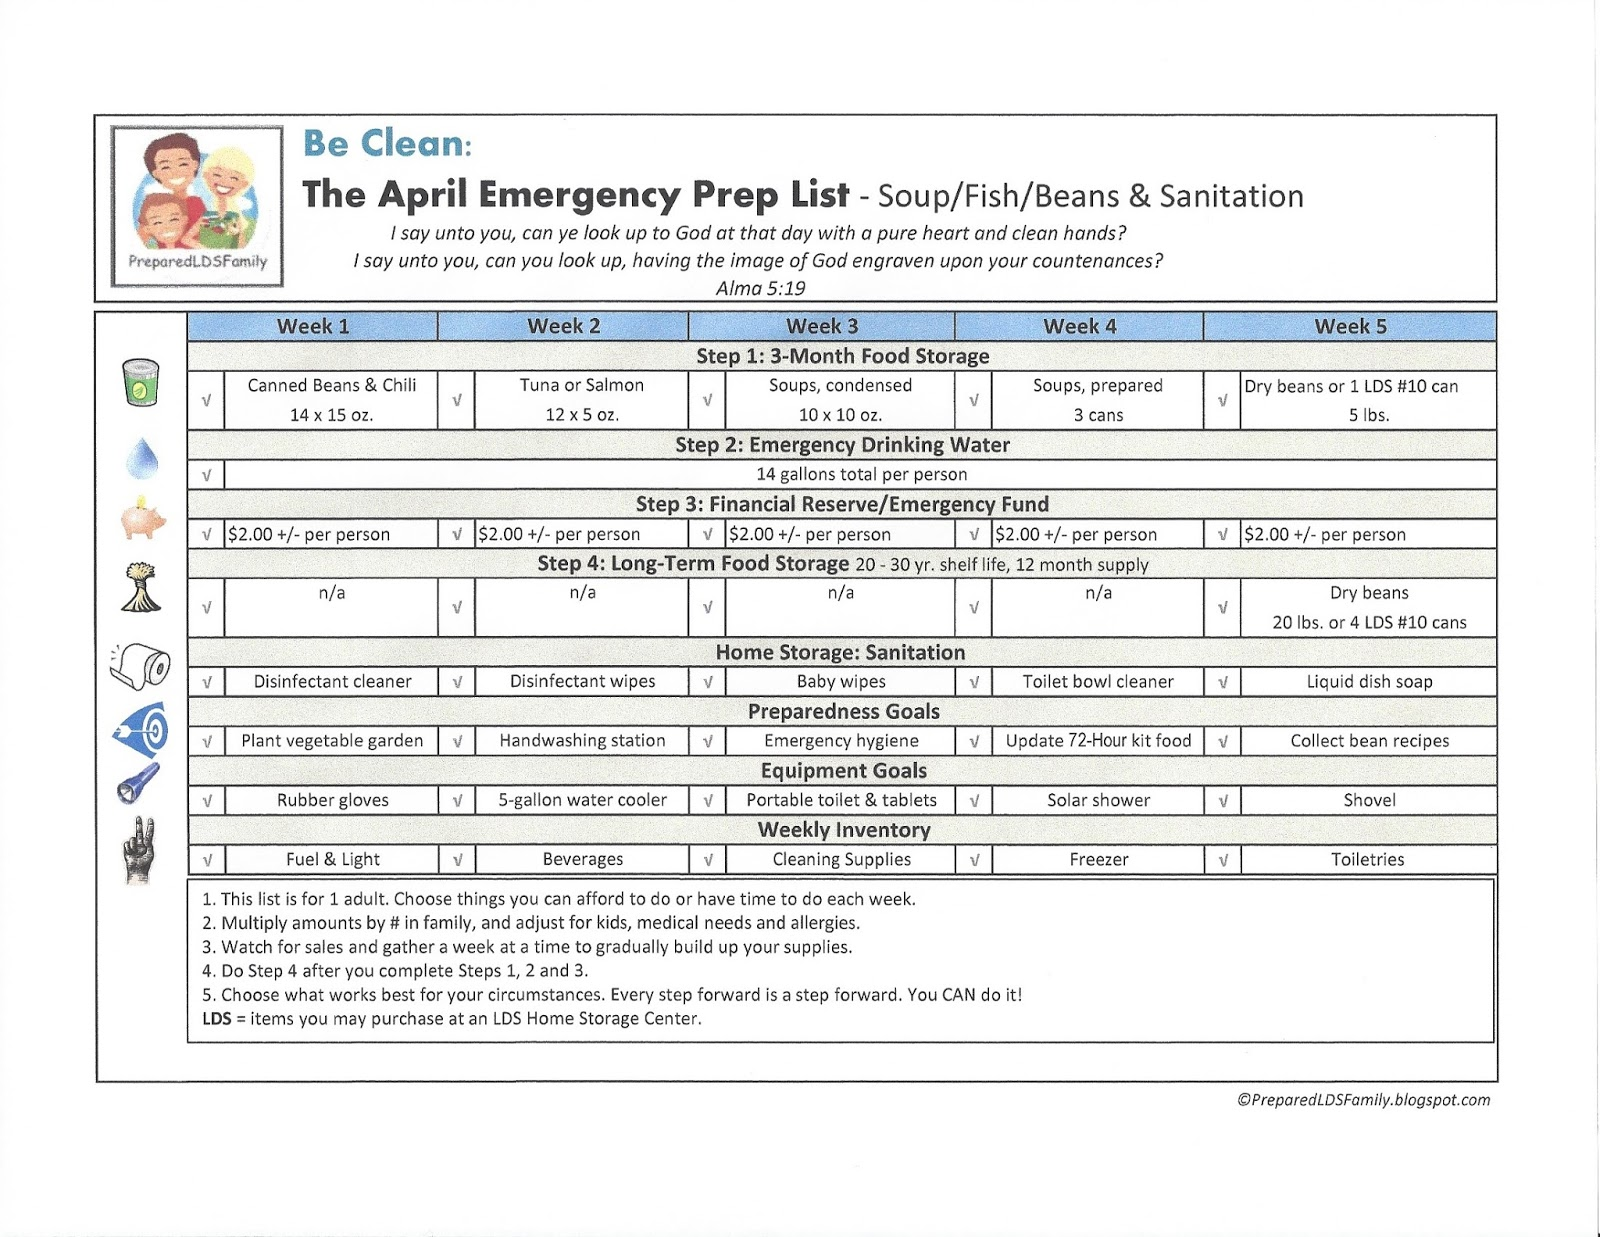 Prepared lds family 12 monthly emergency prep lists be clean april soupfishbeans sanitation go here for printable april list click here for the april 2016 emergency prep calendar forumfinder Choice Image